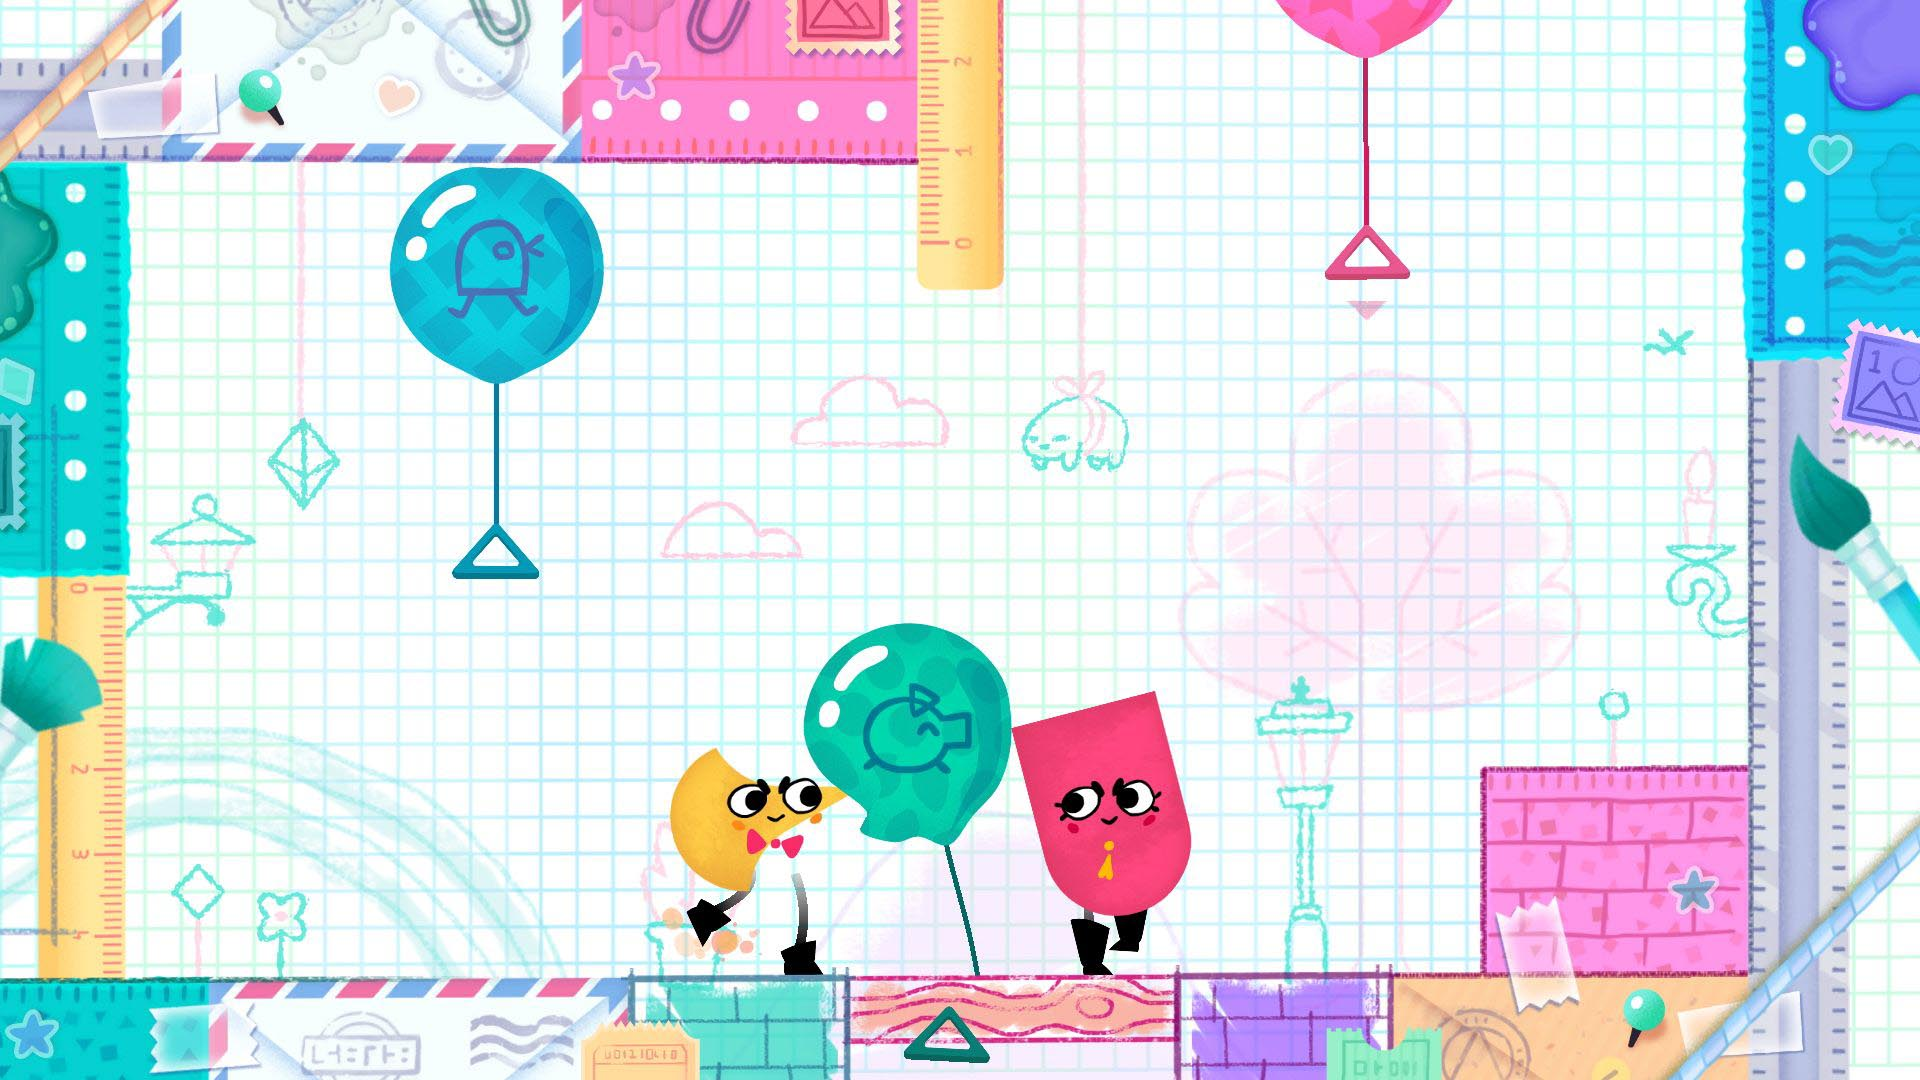 3_NintendoSwitch_Snipperclips_Screenshots_Snippers_Presentation2017_scrn03_v1